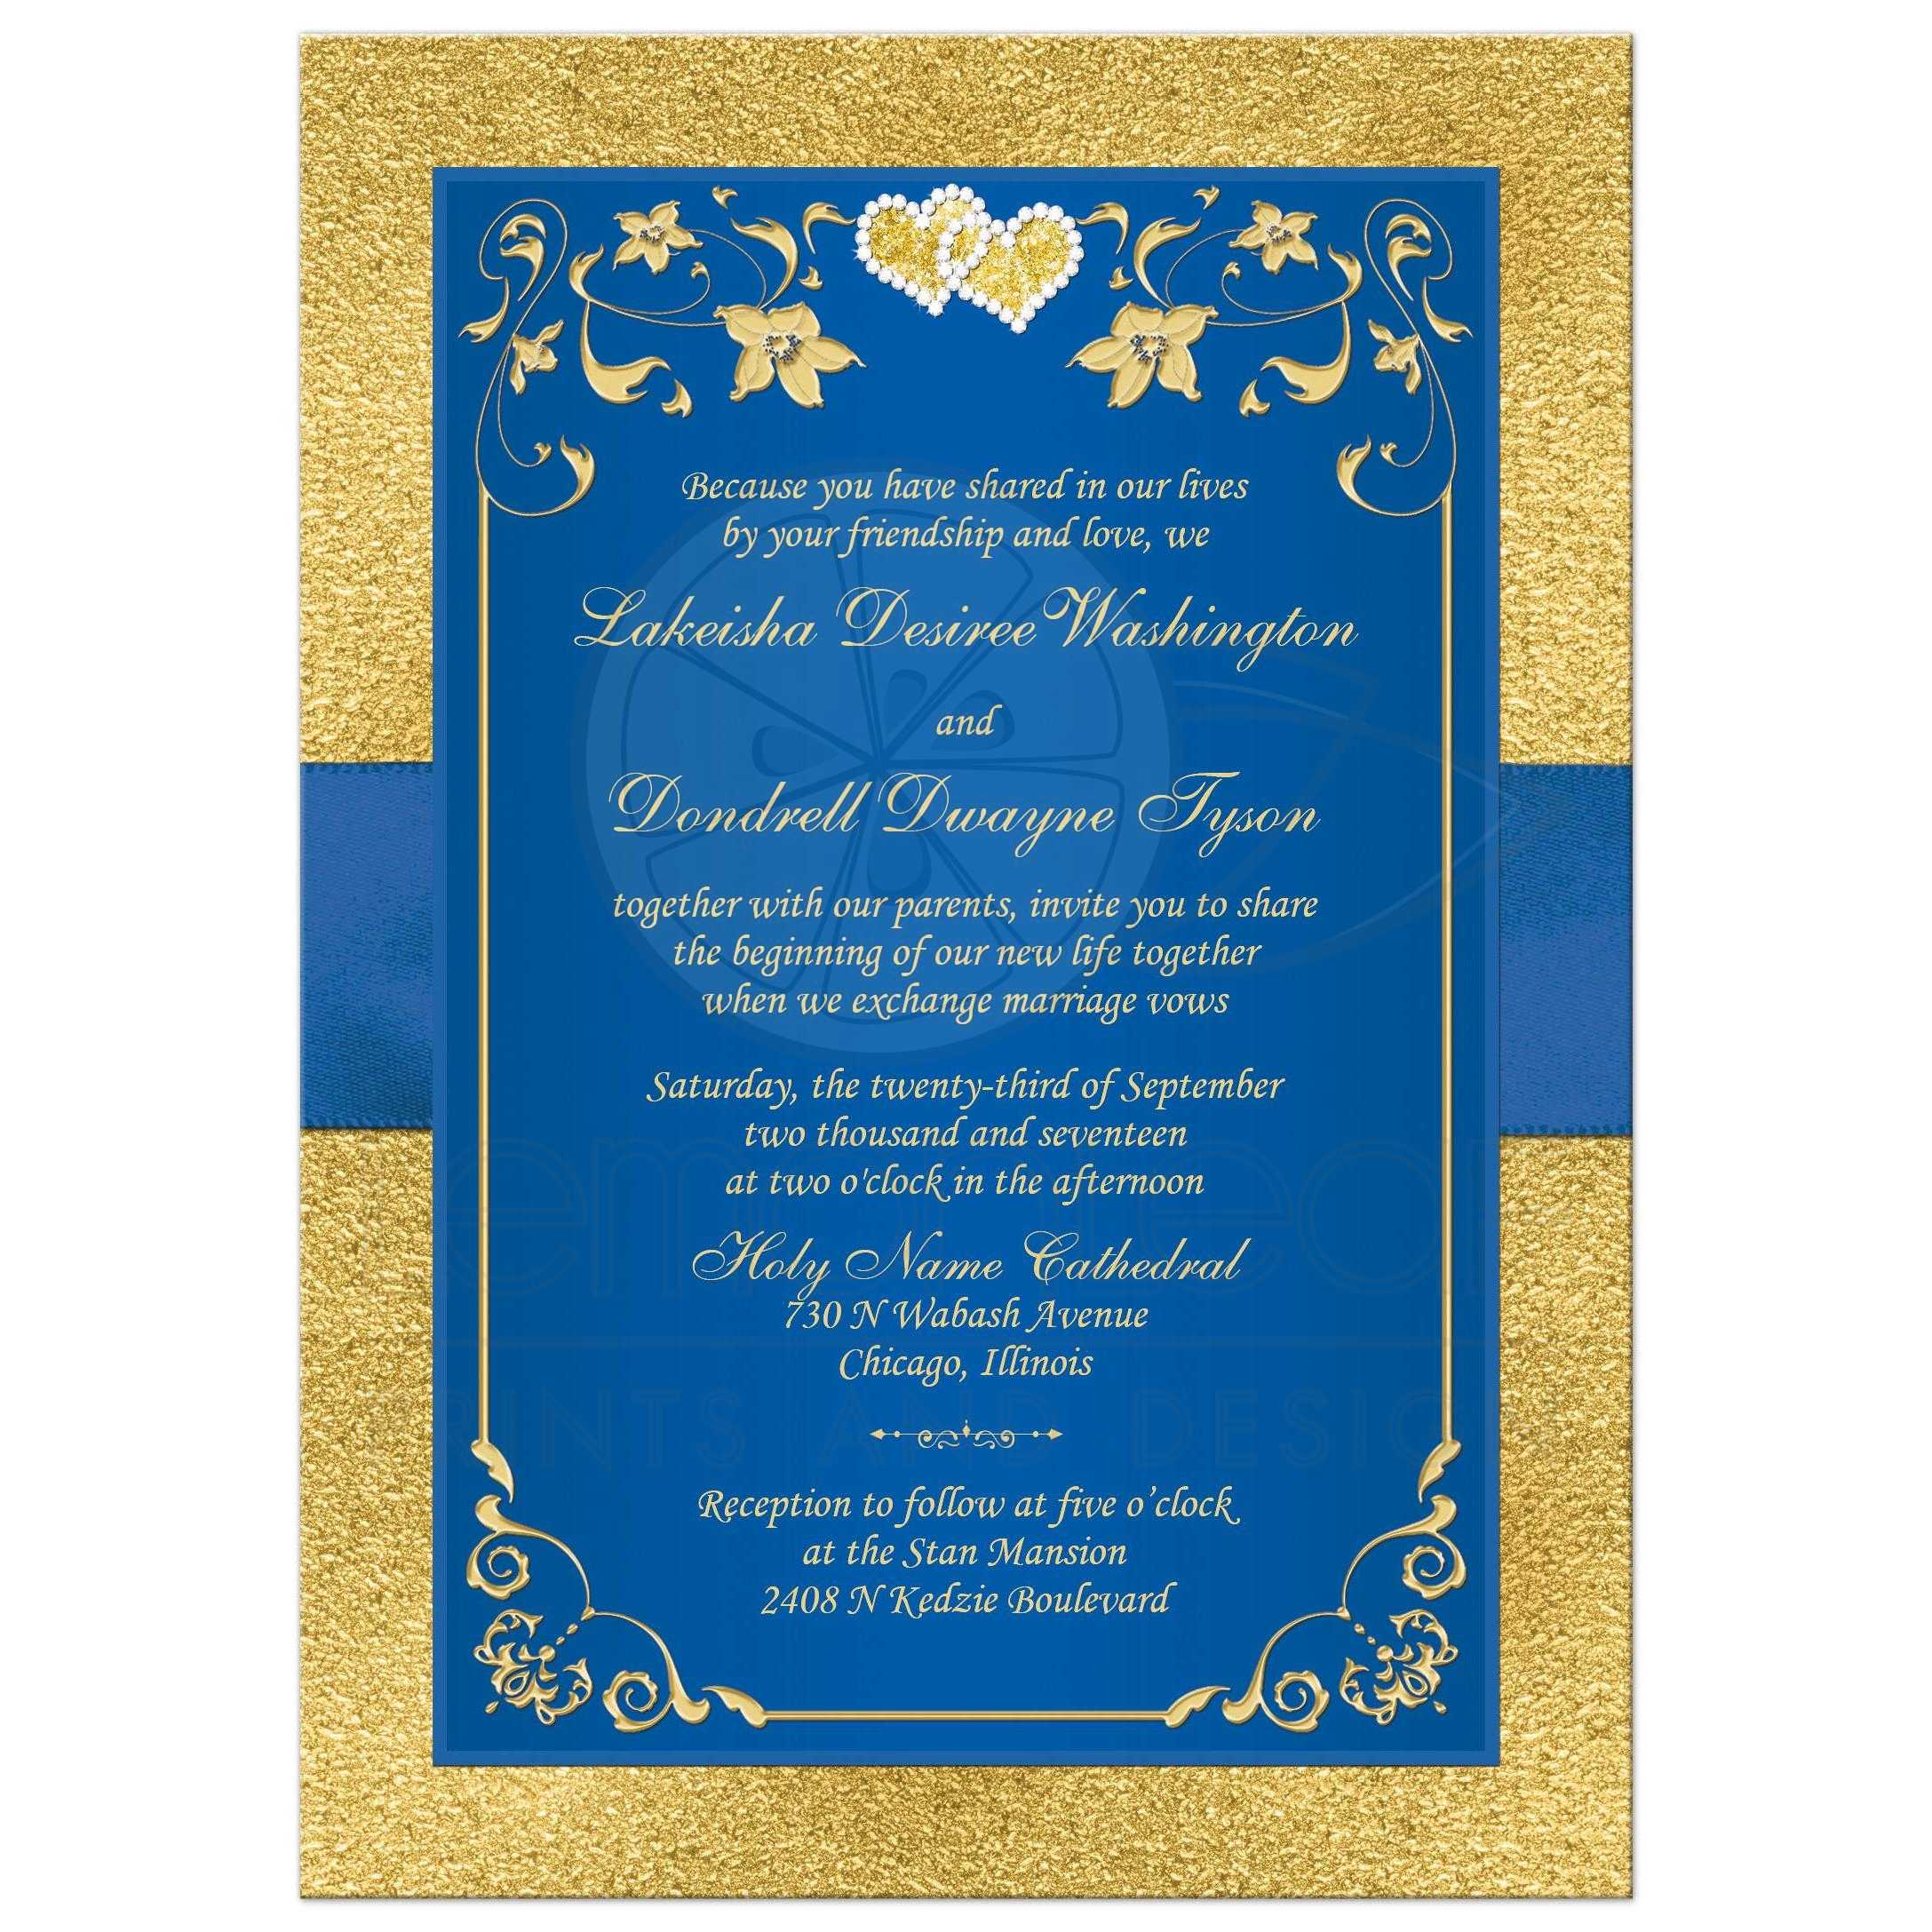 Wedding Invitation Royal Blue Faux Gold Foil Floral Printed